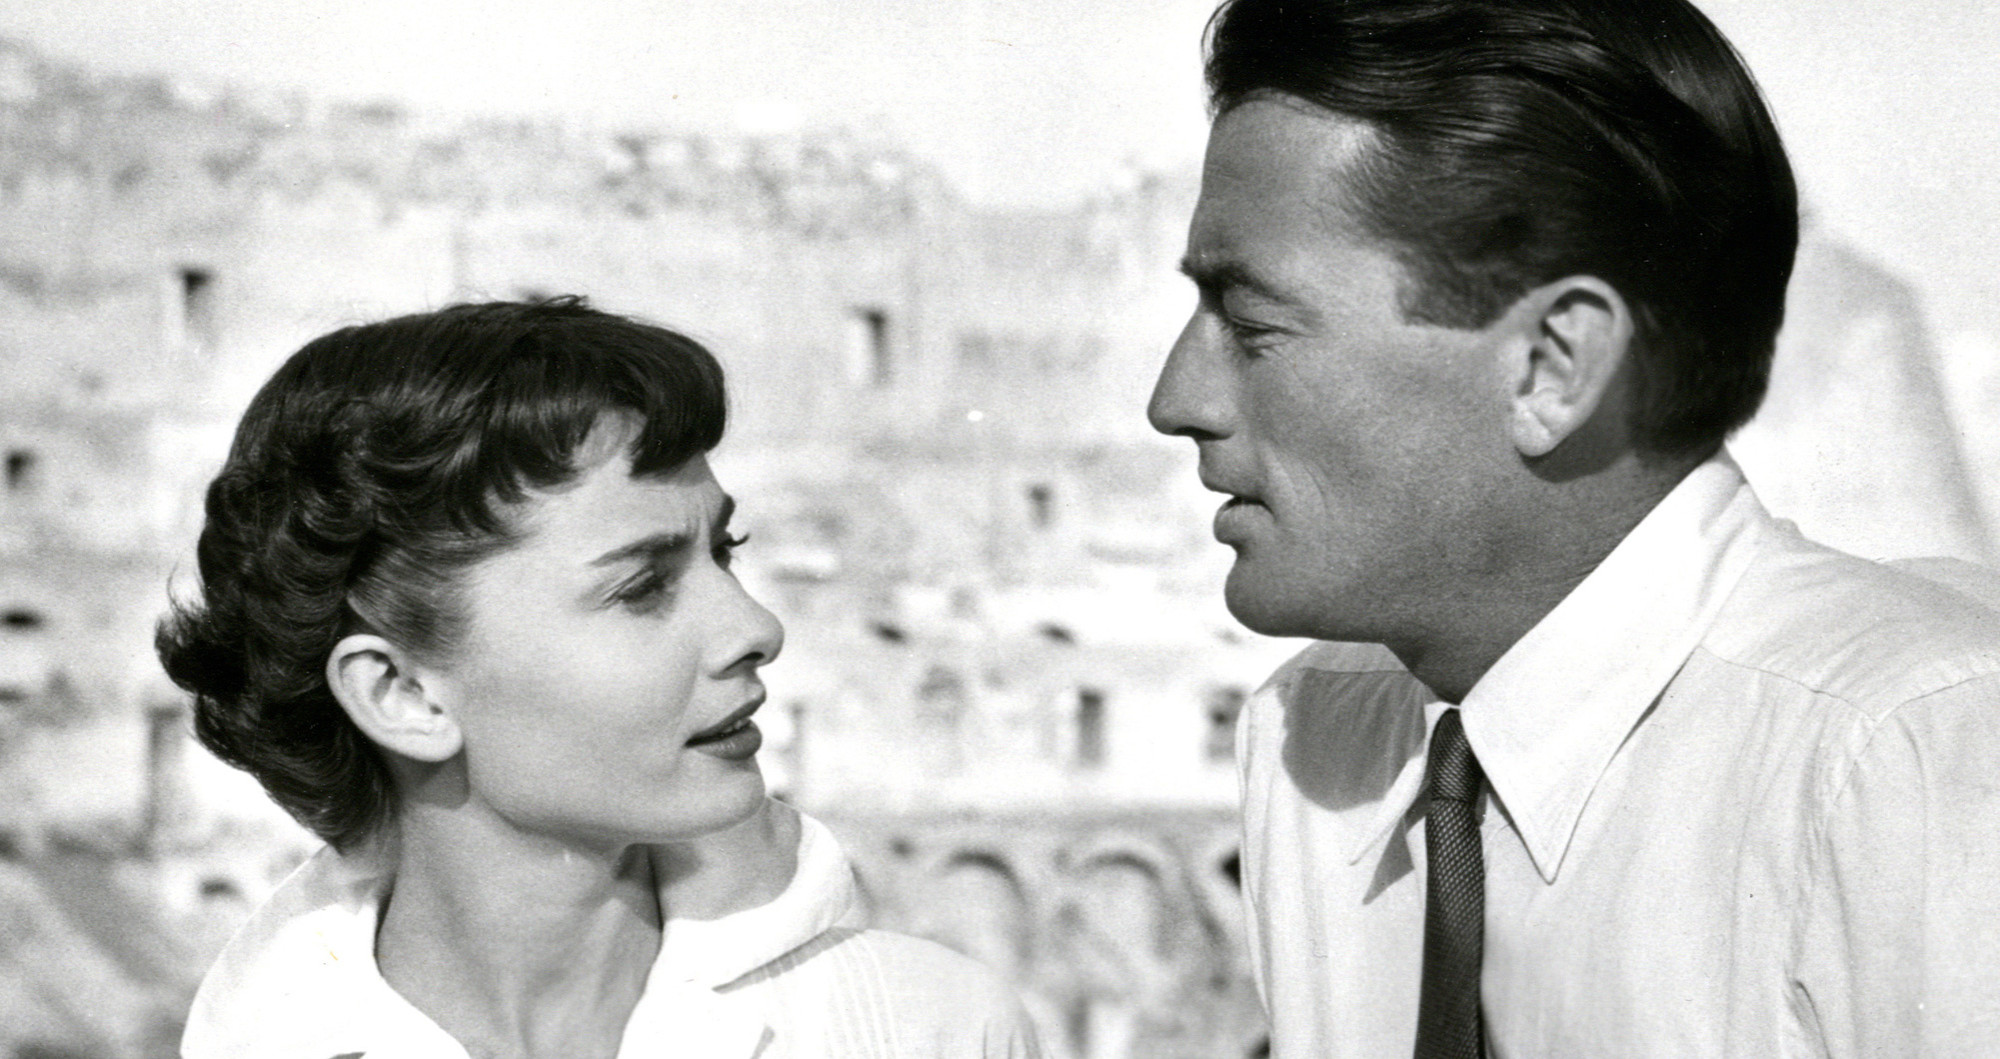 Roman Holiday. 1953. USA. Directed by William Wyler